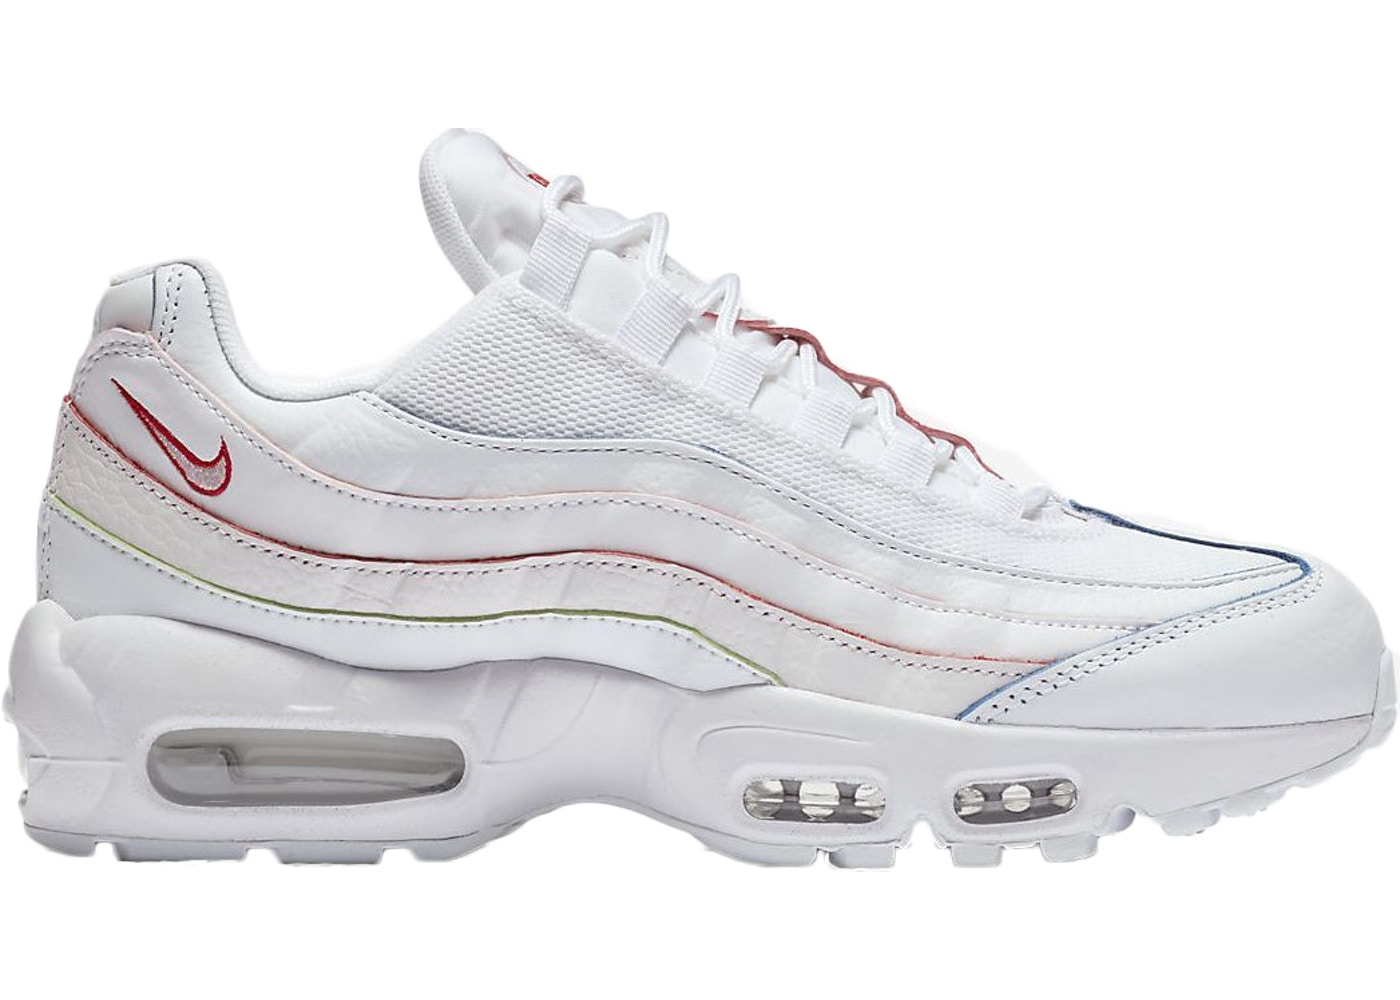 low priced a5cde 9a351 Nike Air Max 95 Shoes - New Highest Bids